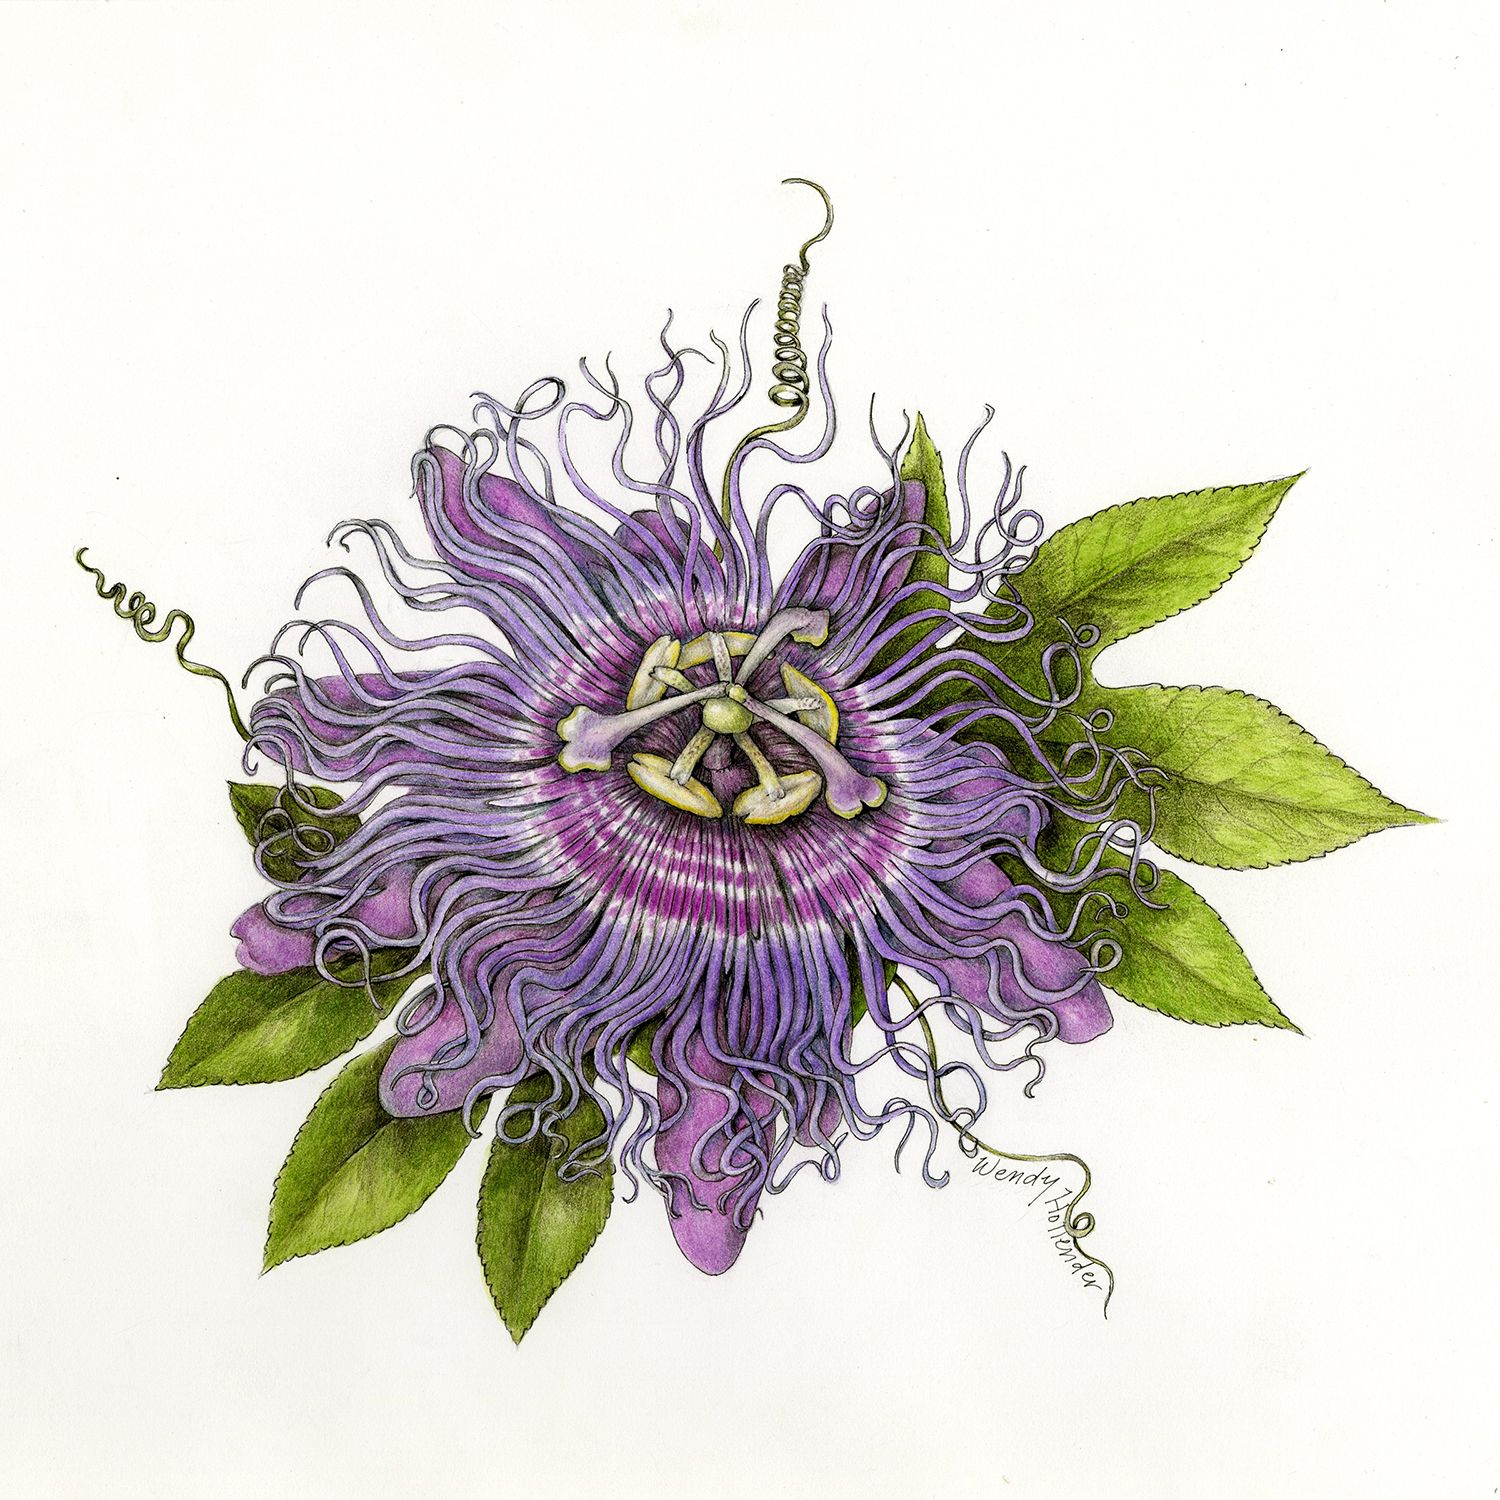 Passion Flower Wendy Hollender Passion Fruit Flower Passion Flower Botanical Illustration